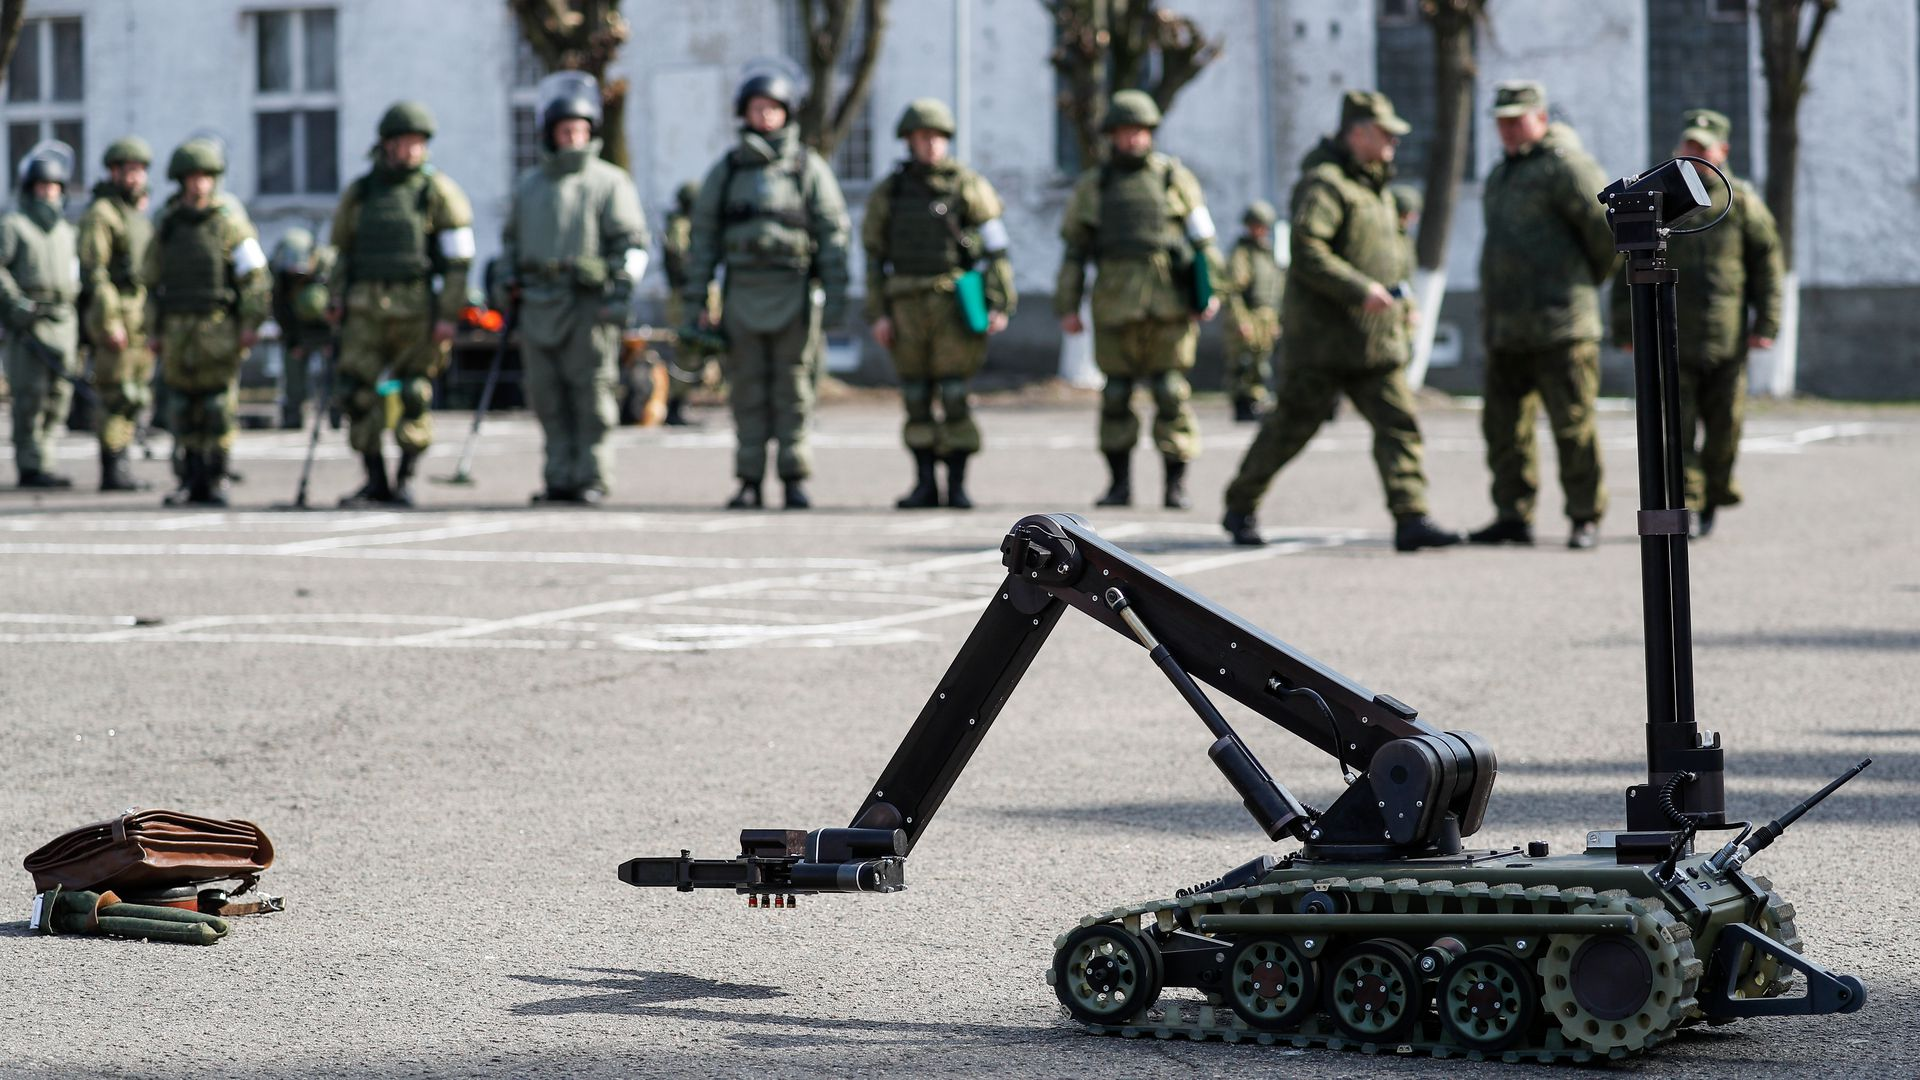 A military robot being tested